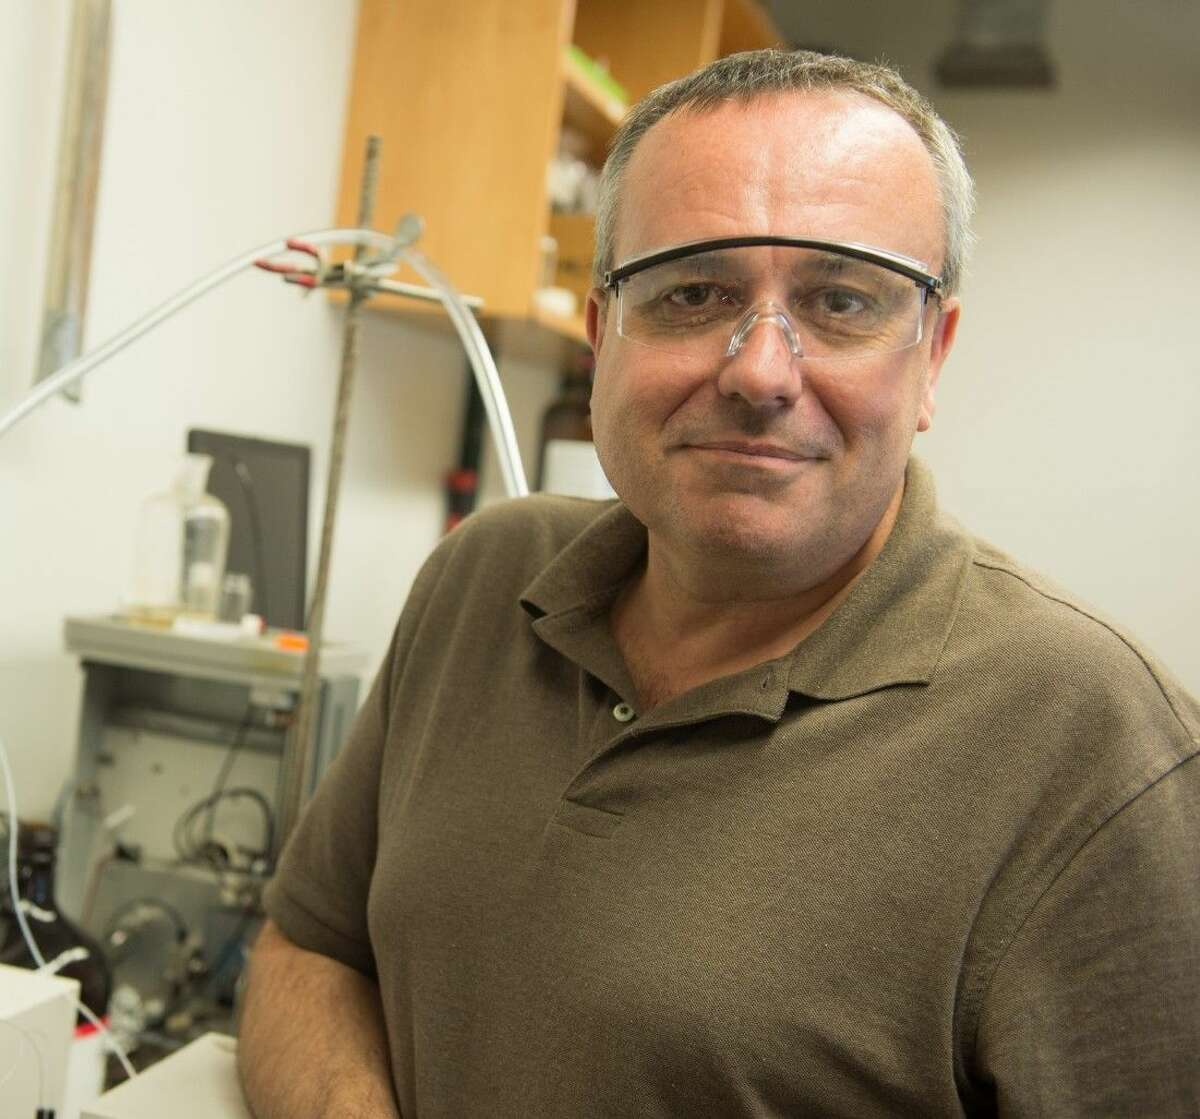 Rice University chemist Andrew Barron led an analysis of water produced by hydraulic fracturing of three gas reservoirs and suggested environmentally friendly remedies are needed to treat and reuse it.